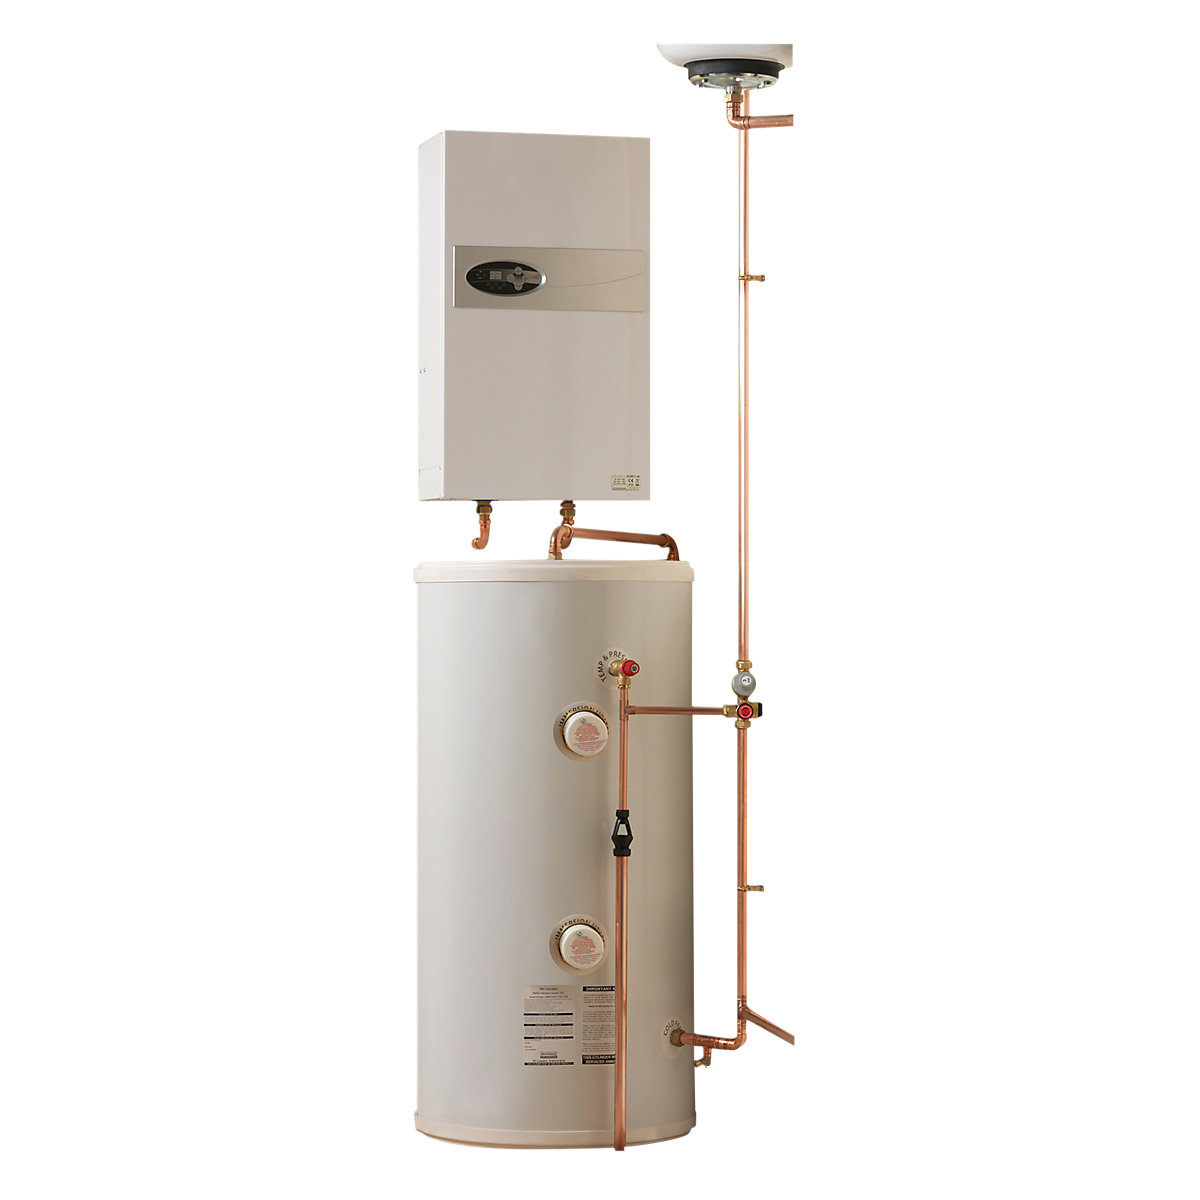 Electric Heating Company Eclipse CPSDECL12/210 Electric Boiler ...